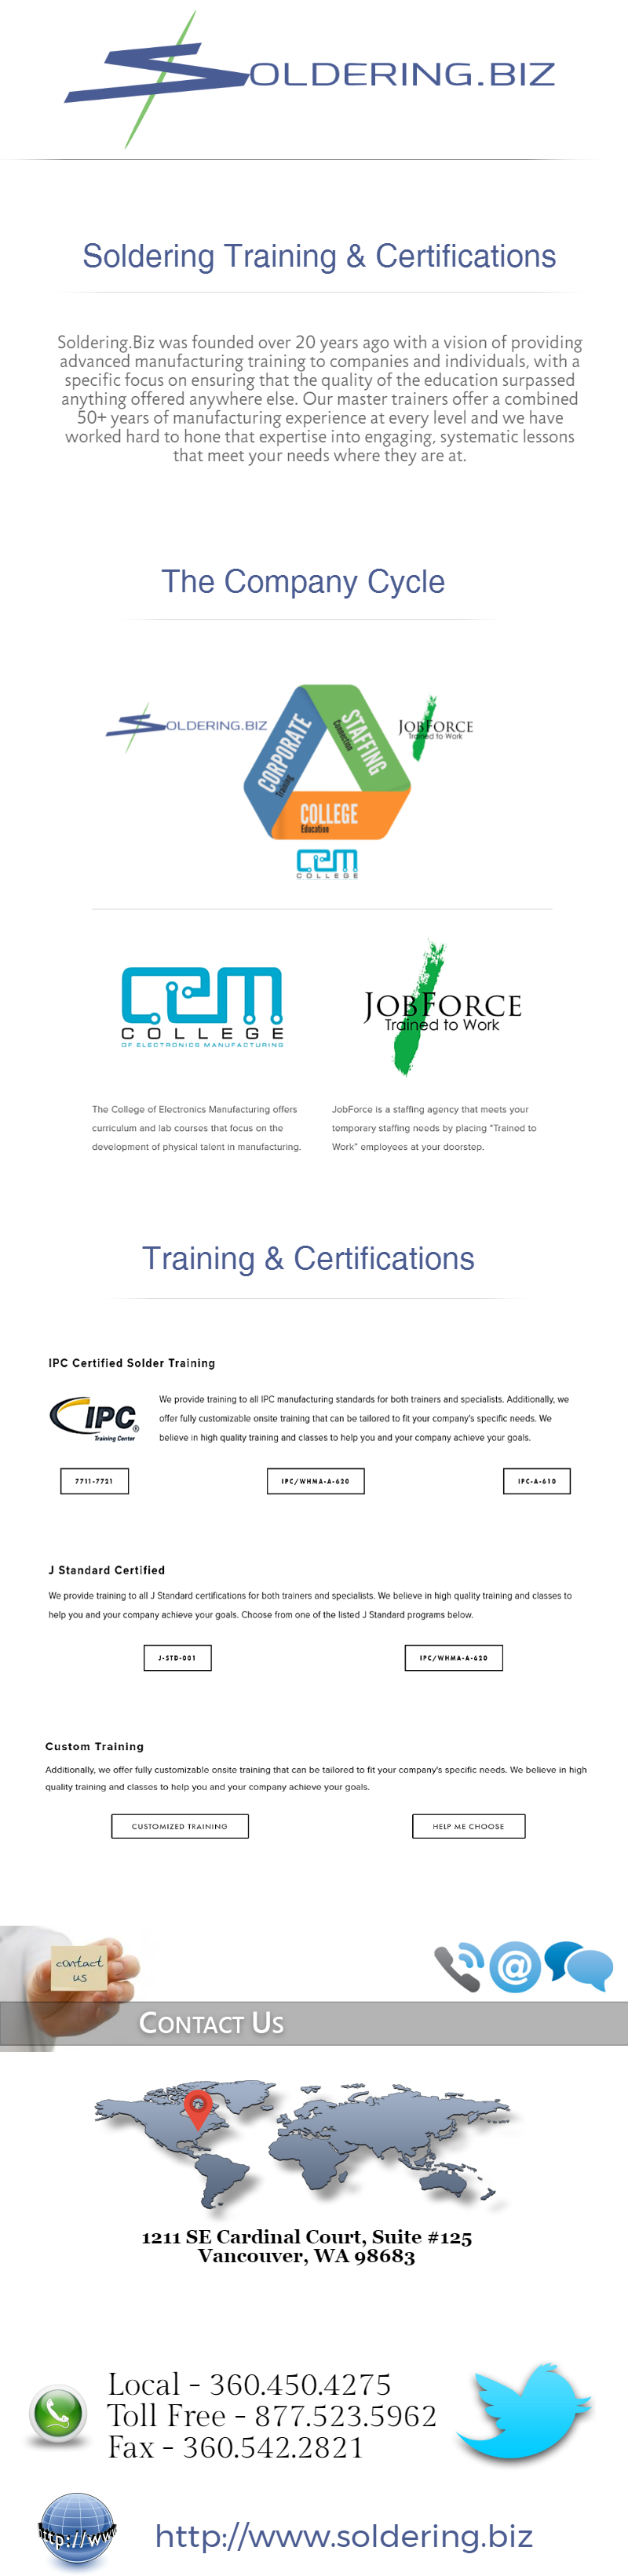 Pin by Soldering Biz on Soldering Training & Certifications